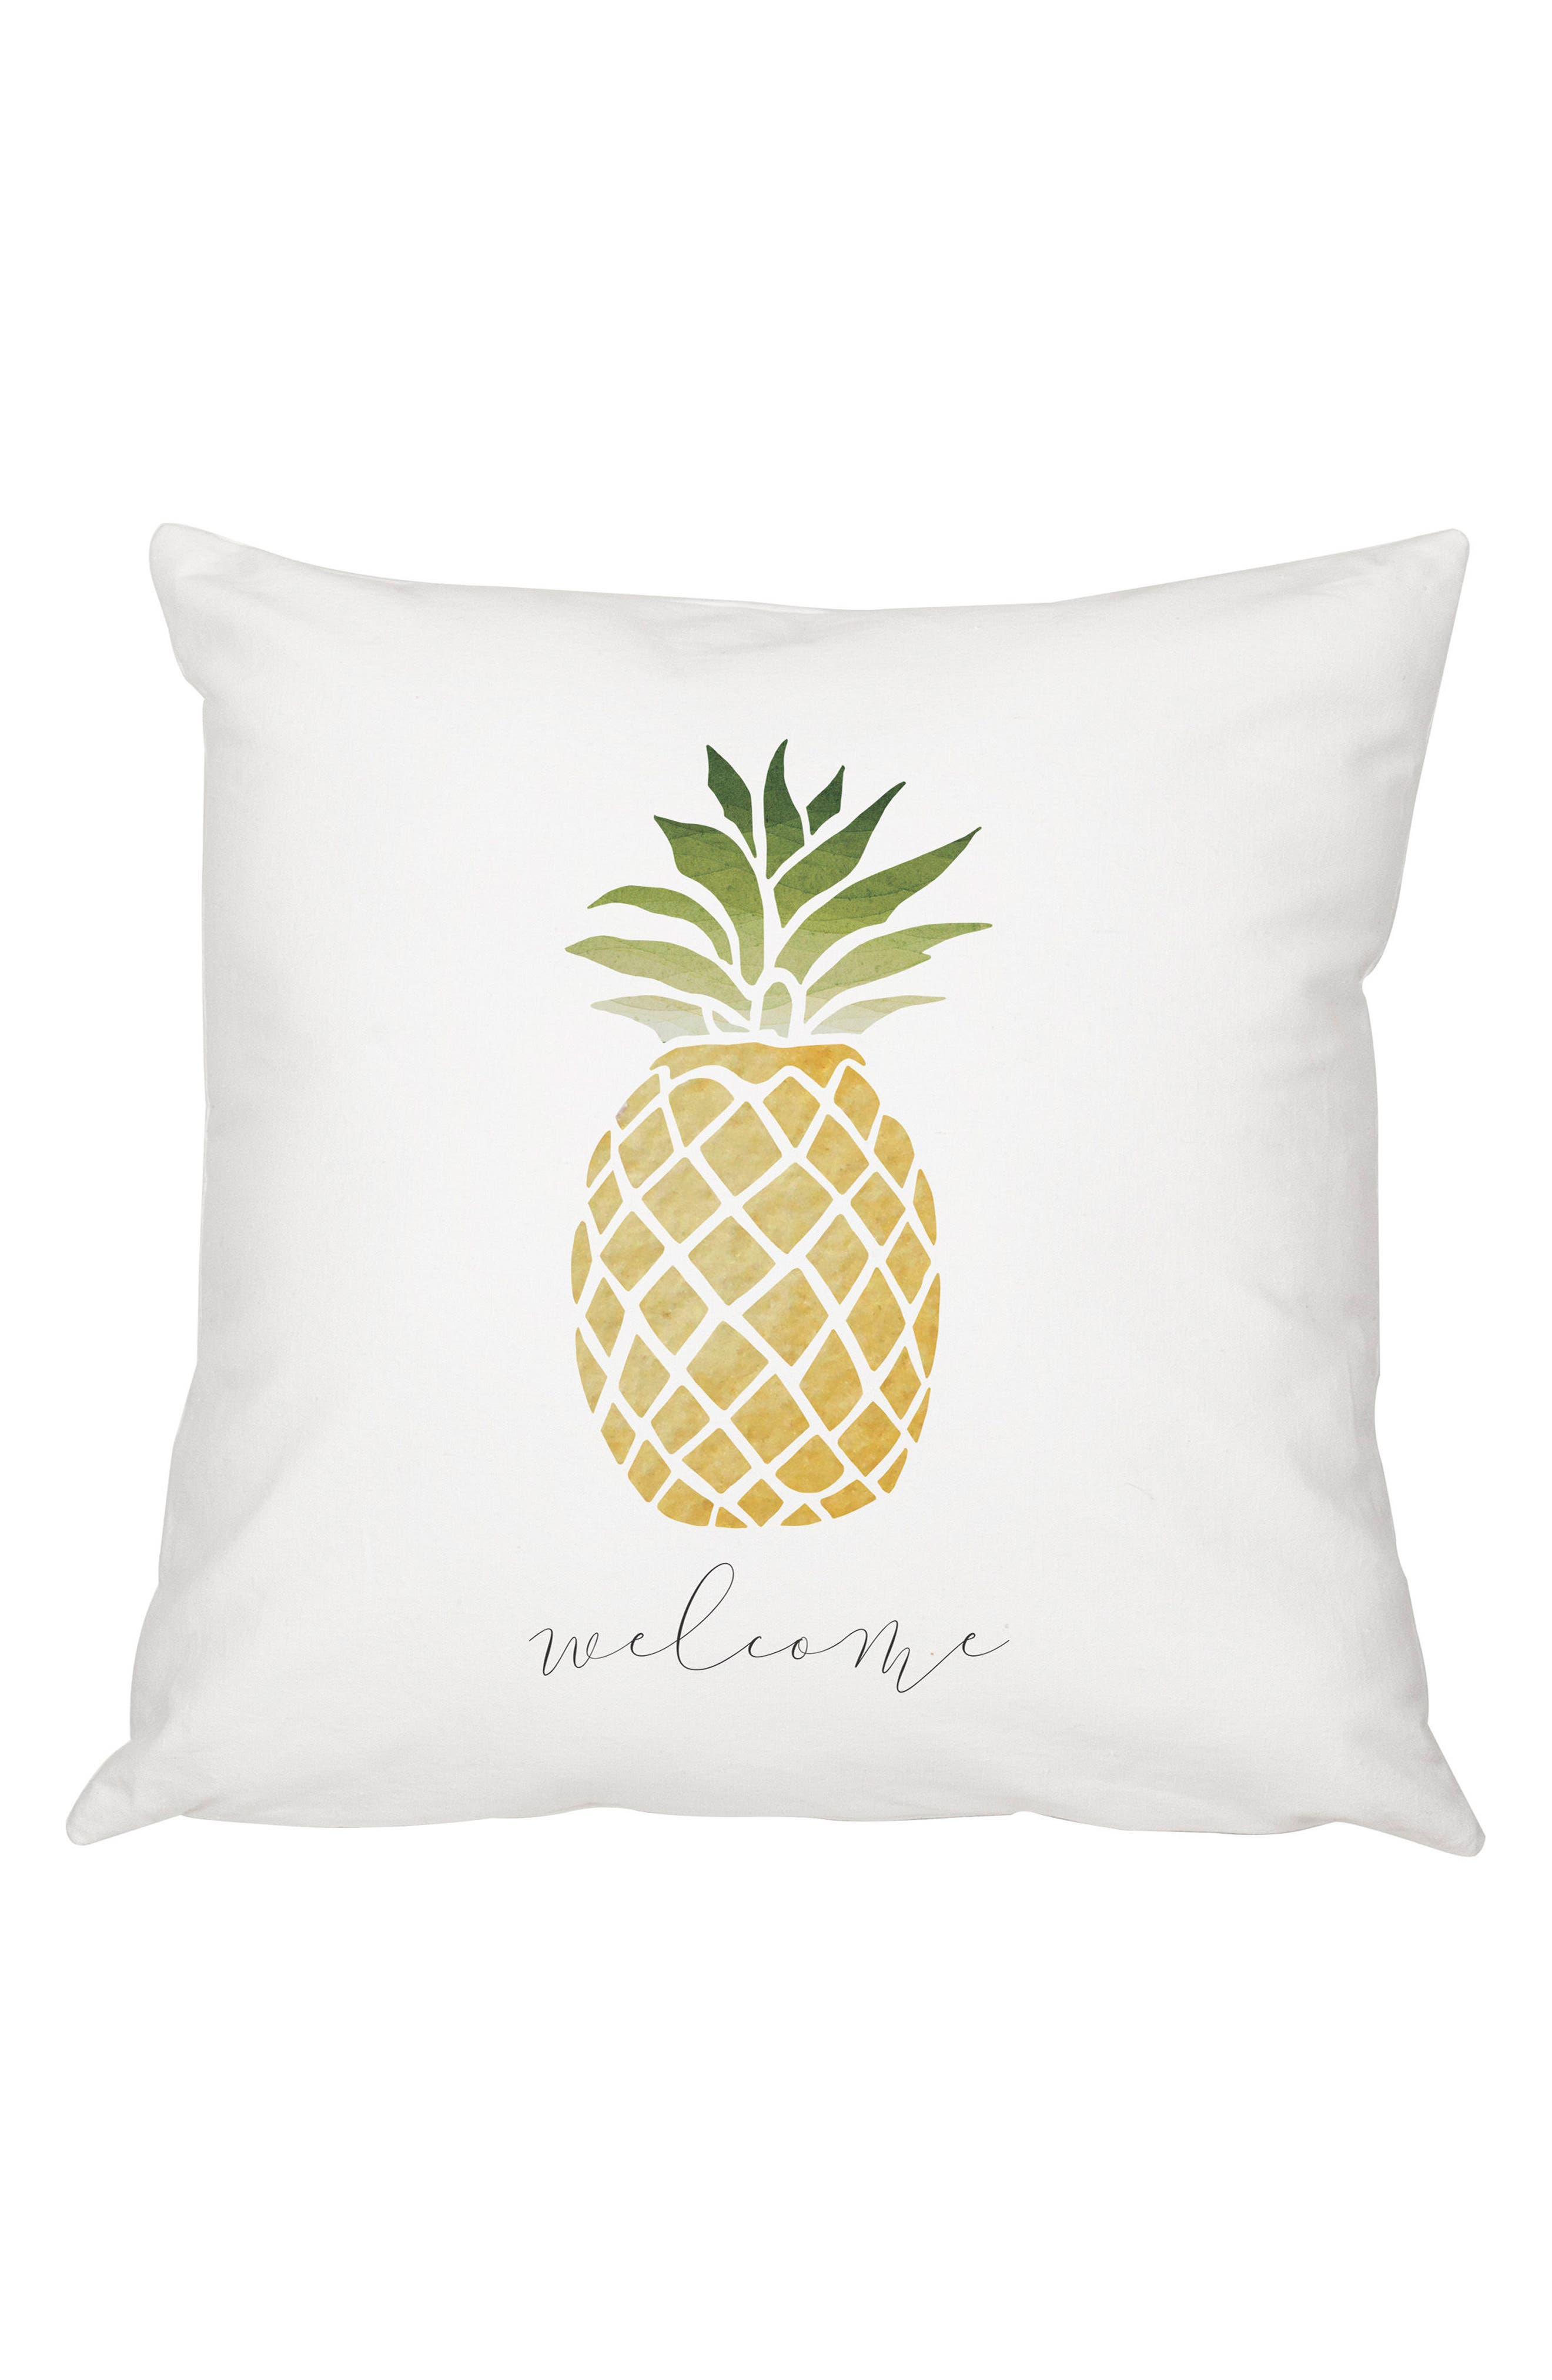 Pineapple Accent Pillow,                             Main thumbnail 1, color,                             Multi